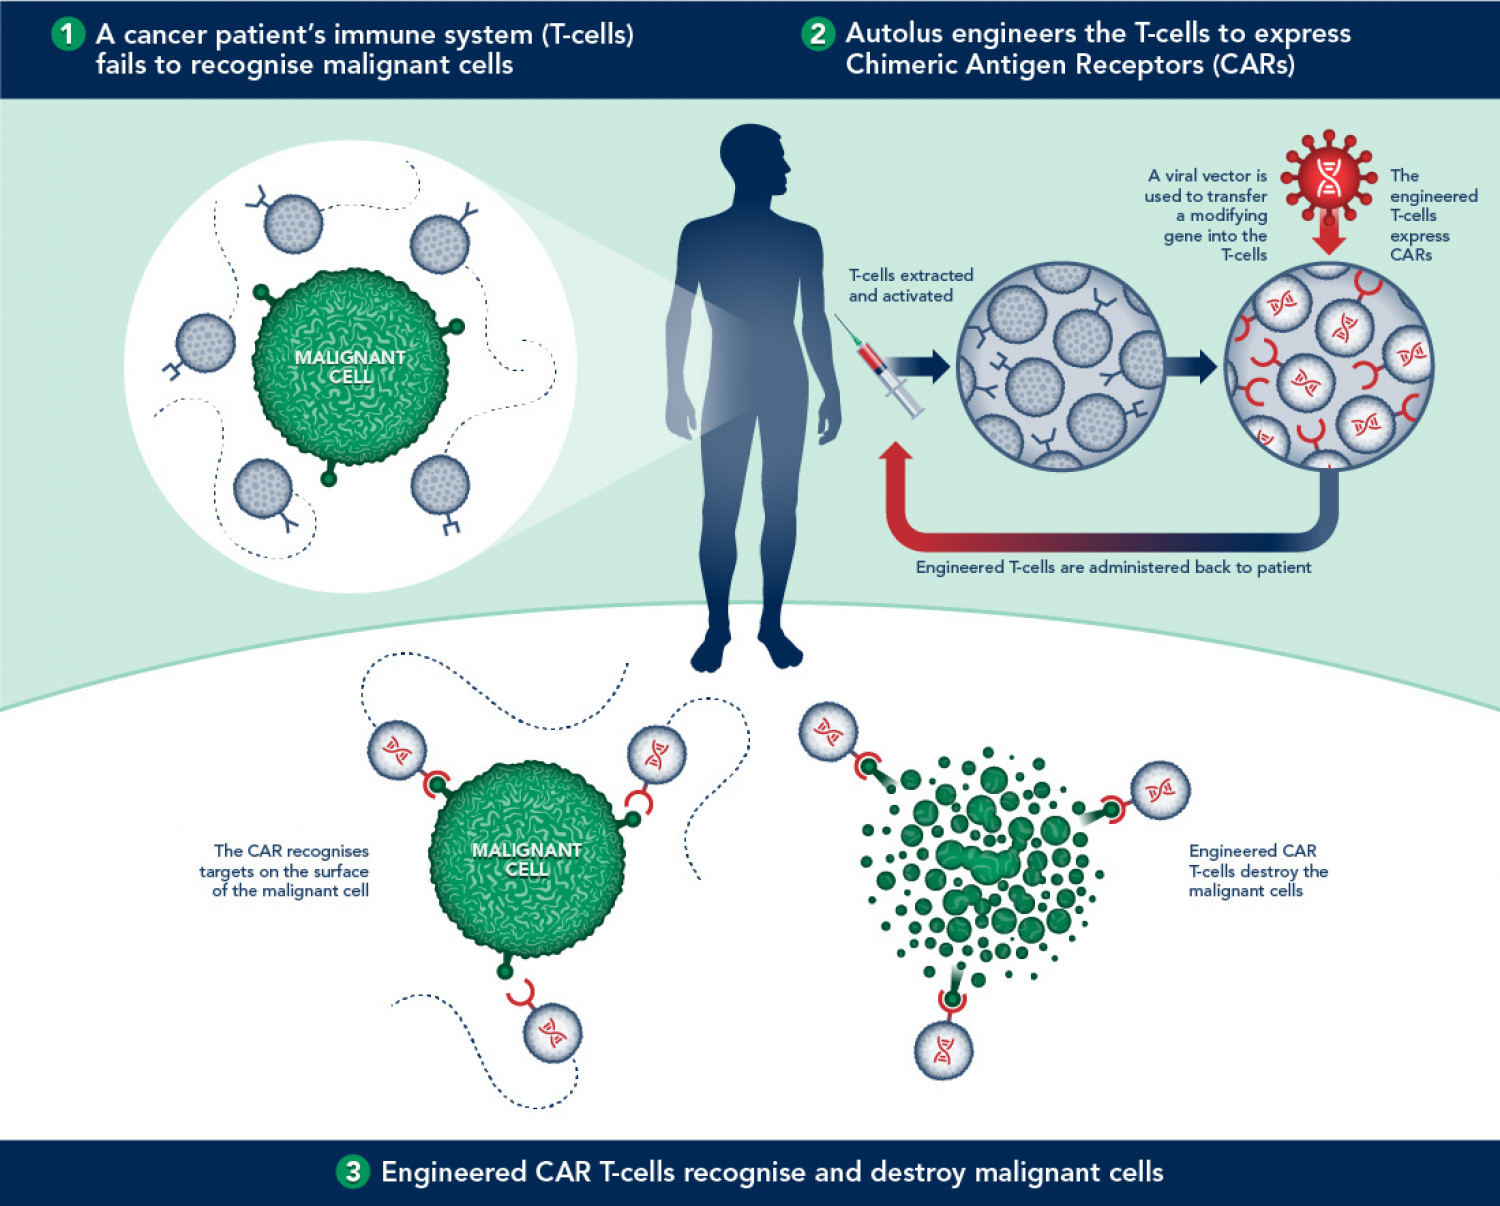 car-tcell-immunotherapy_54ecb6d9ee261_w1